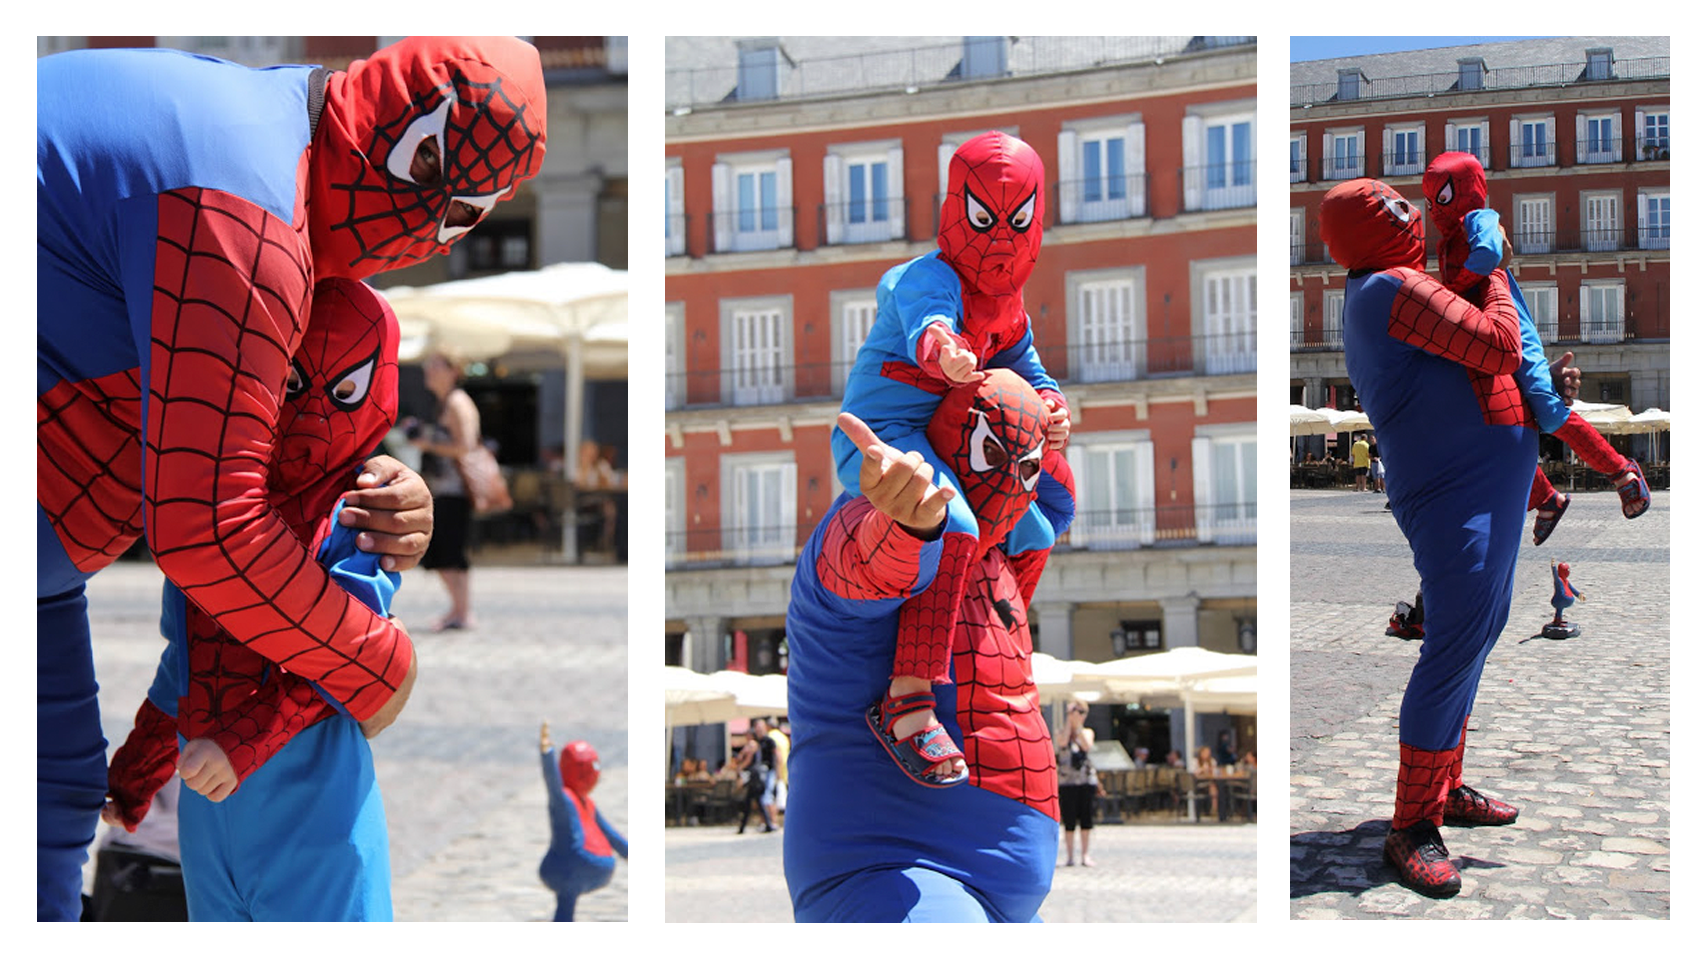 Spiderman-gordo-madrid